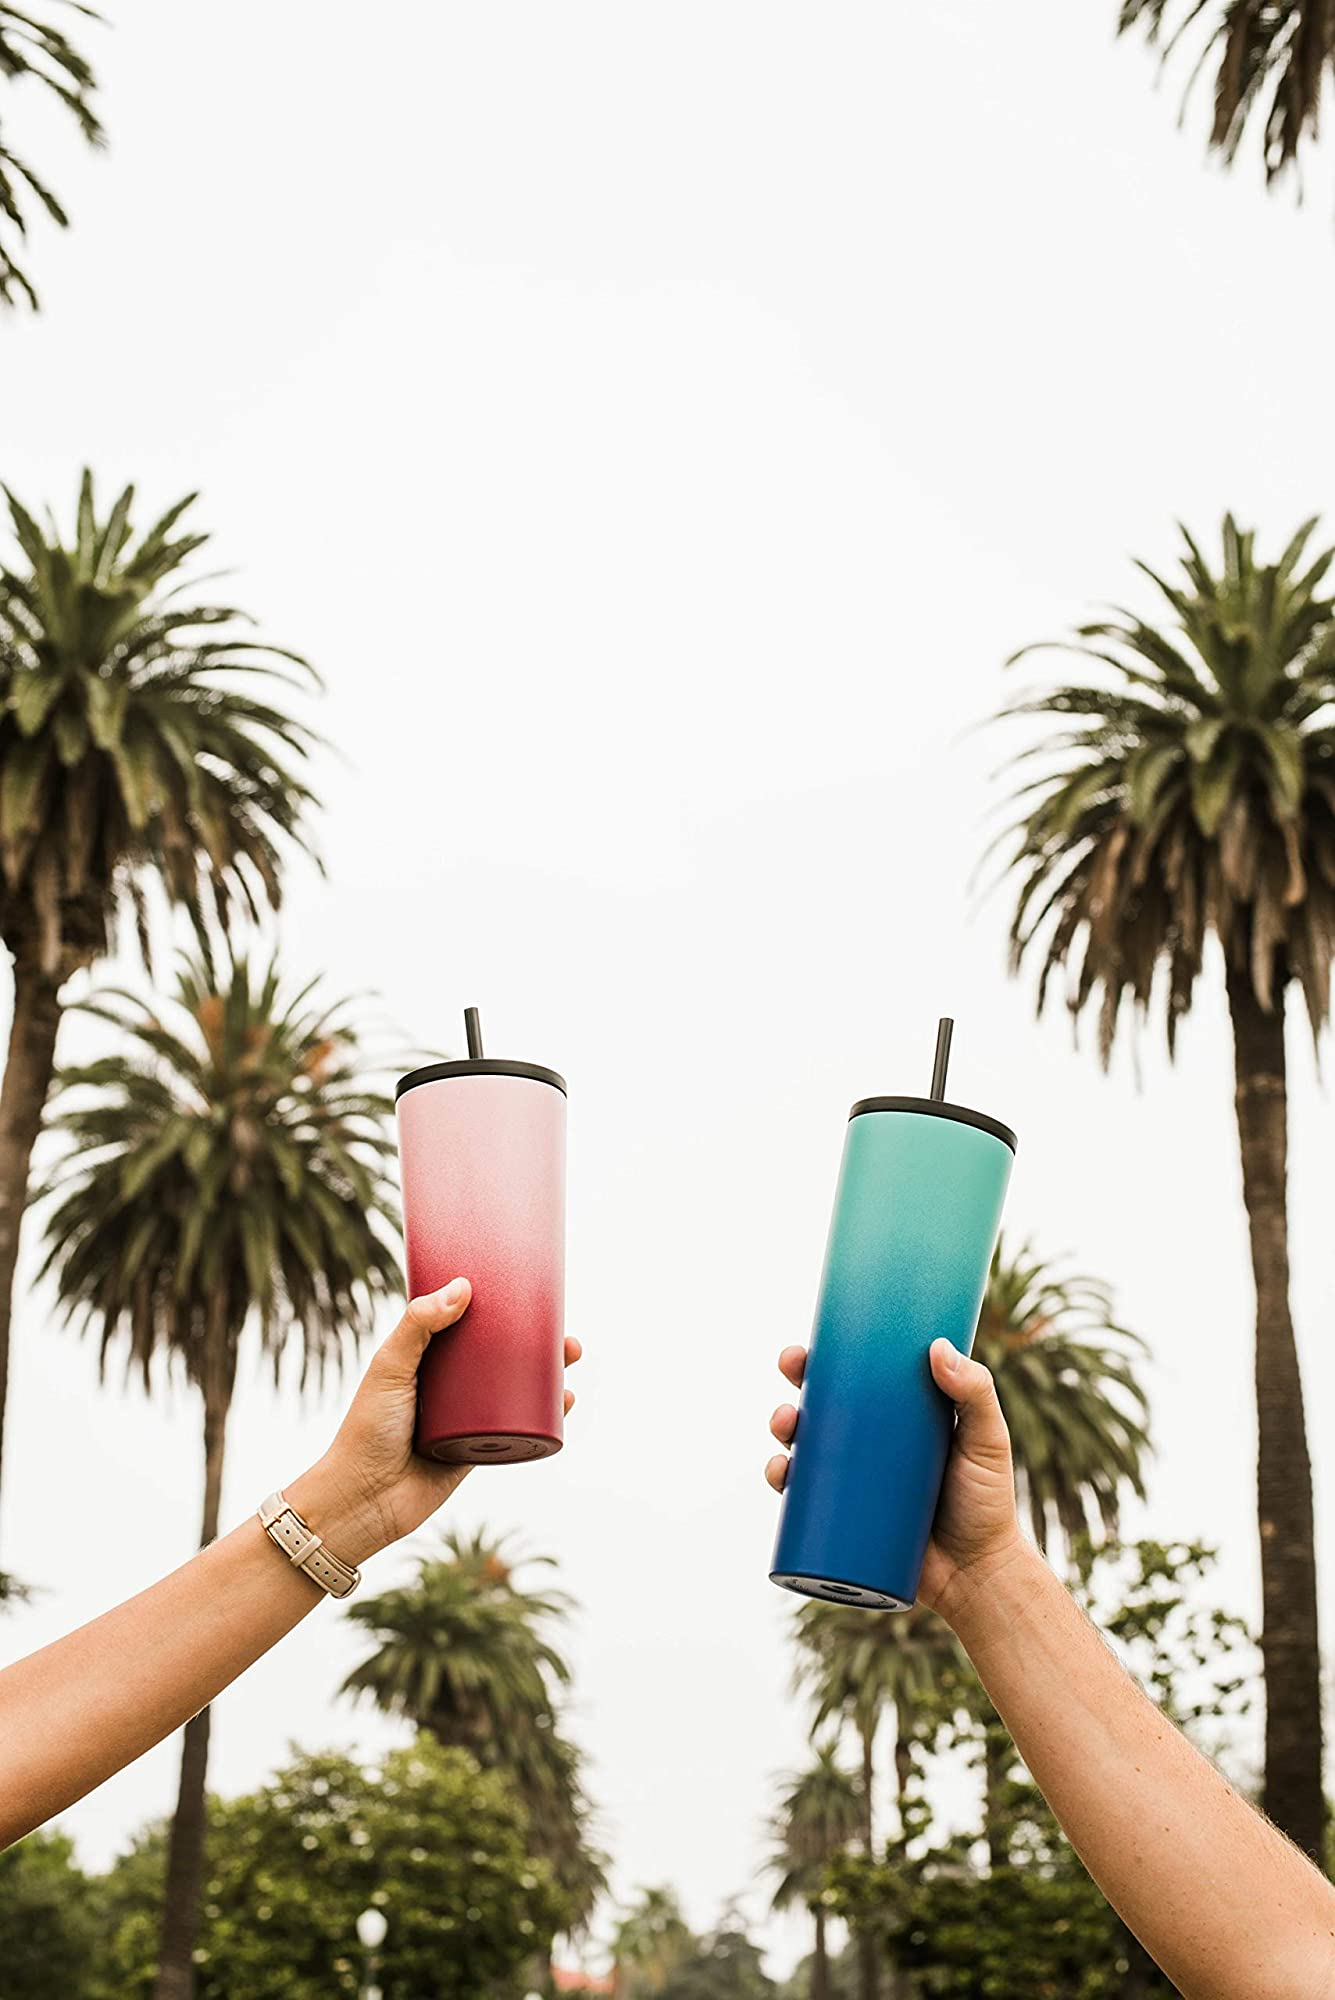 Insulated Stainless Steel Travel Tumbler With Straw And Flip Lids